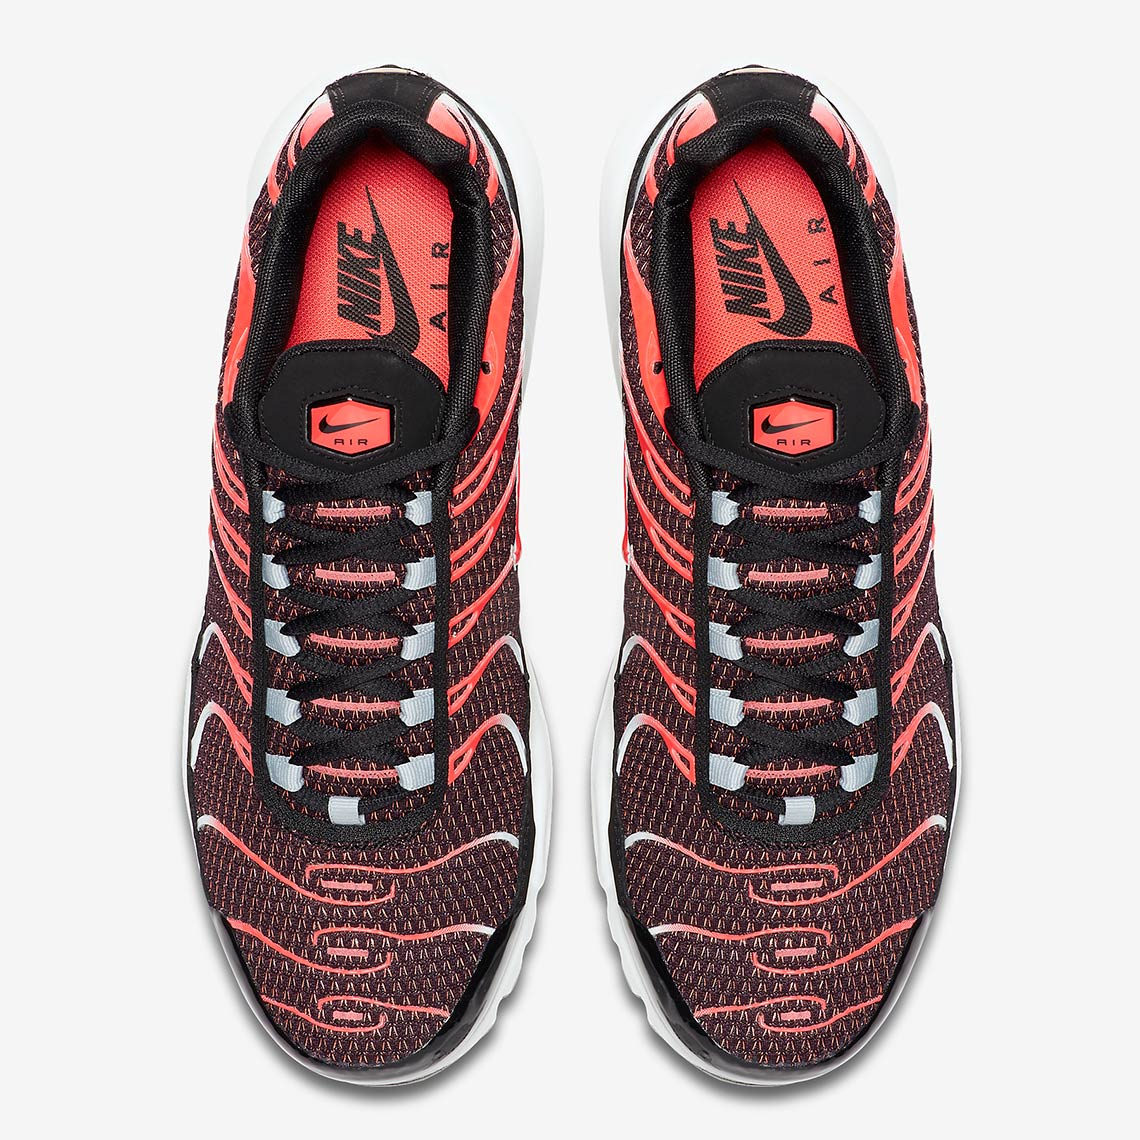 Nike Air Max Plus Hot Lava 852630 034 |